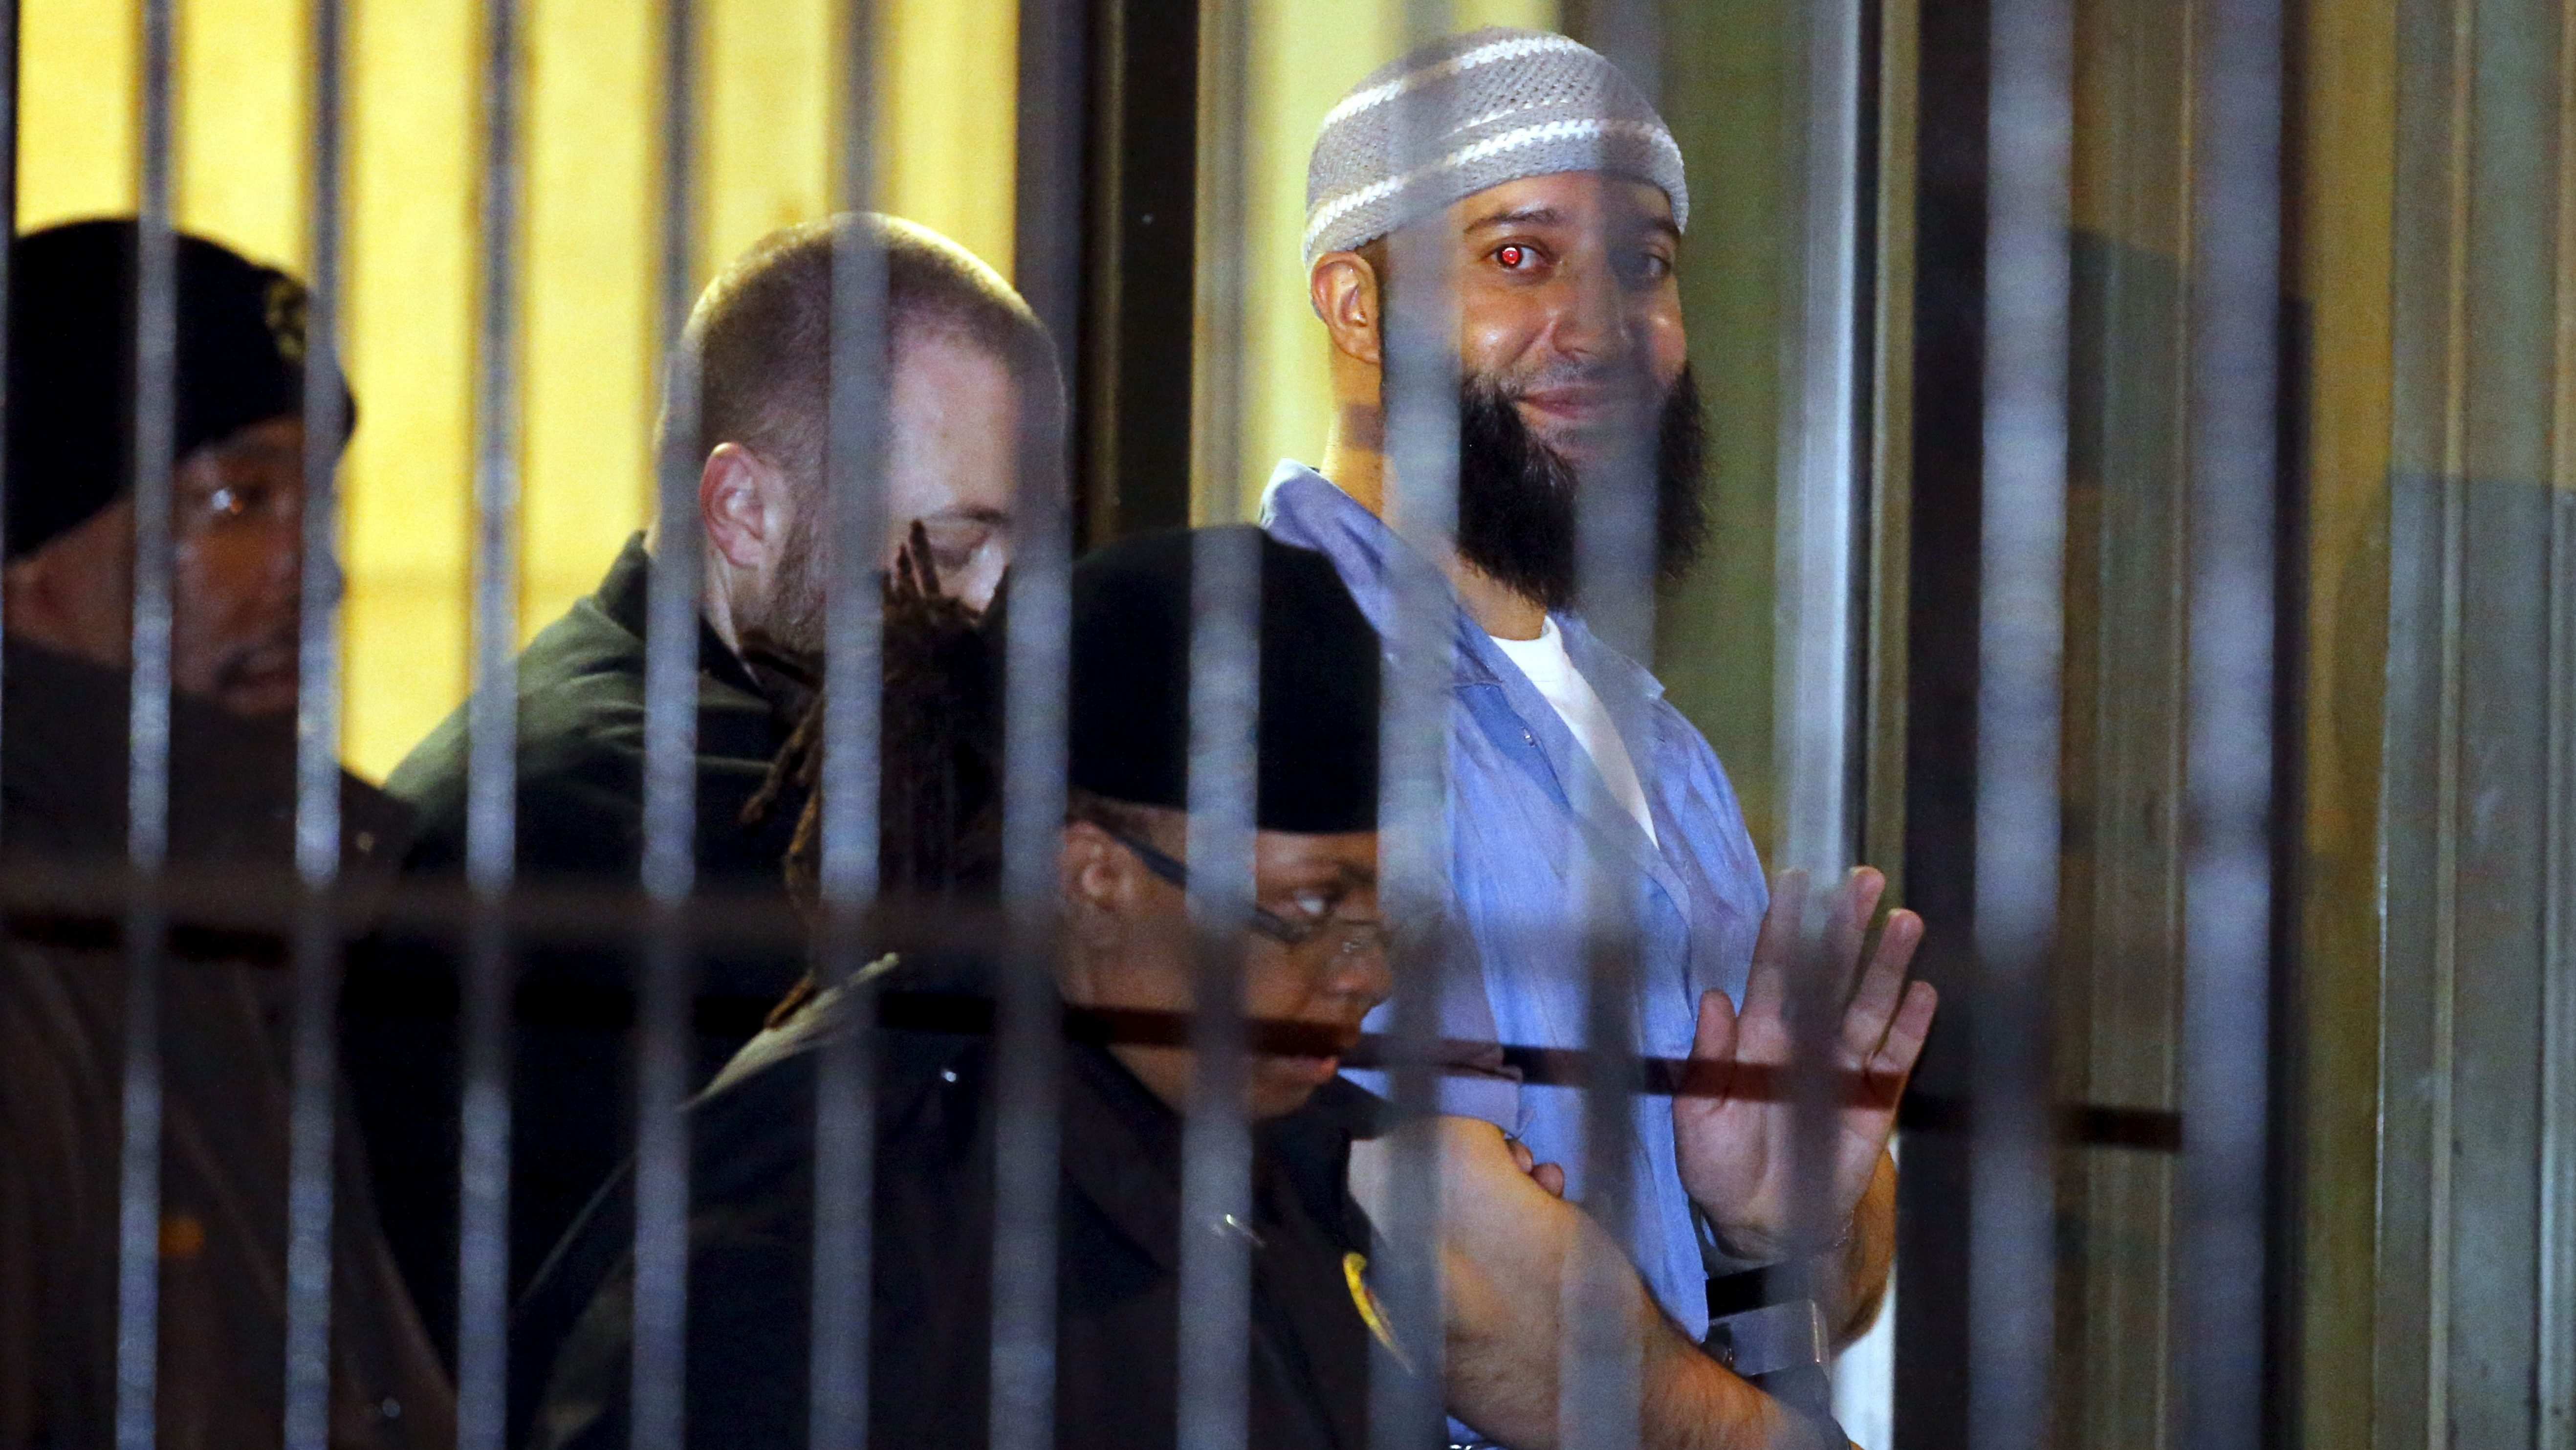 Convicted murderer Adnan Syed leaves the Baltimore City Circuit Courthouse in Baltimore, Maryland